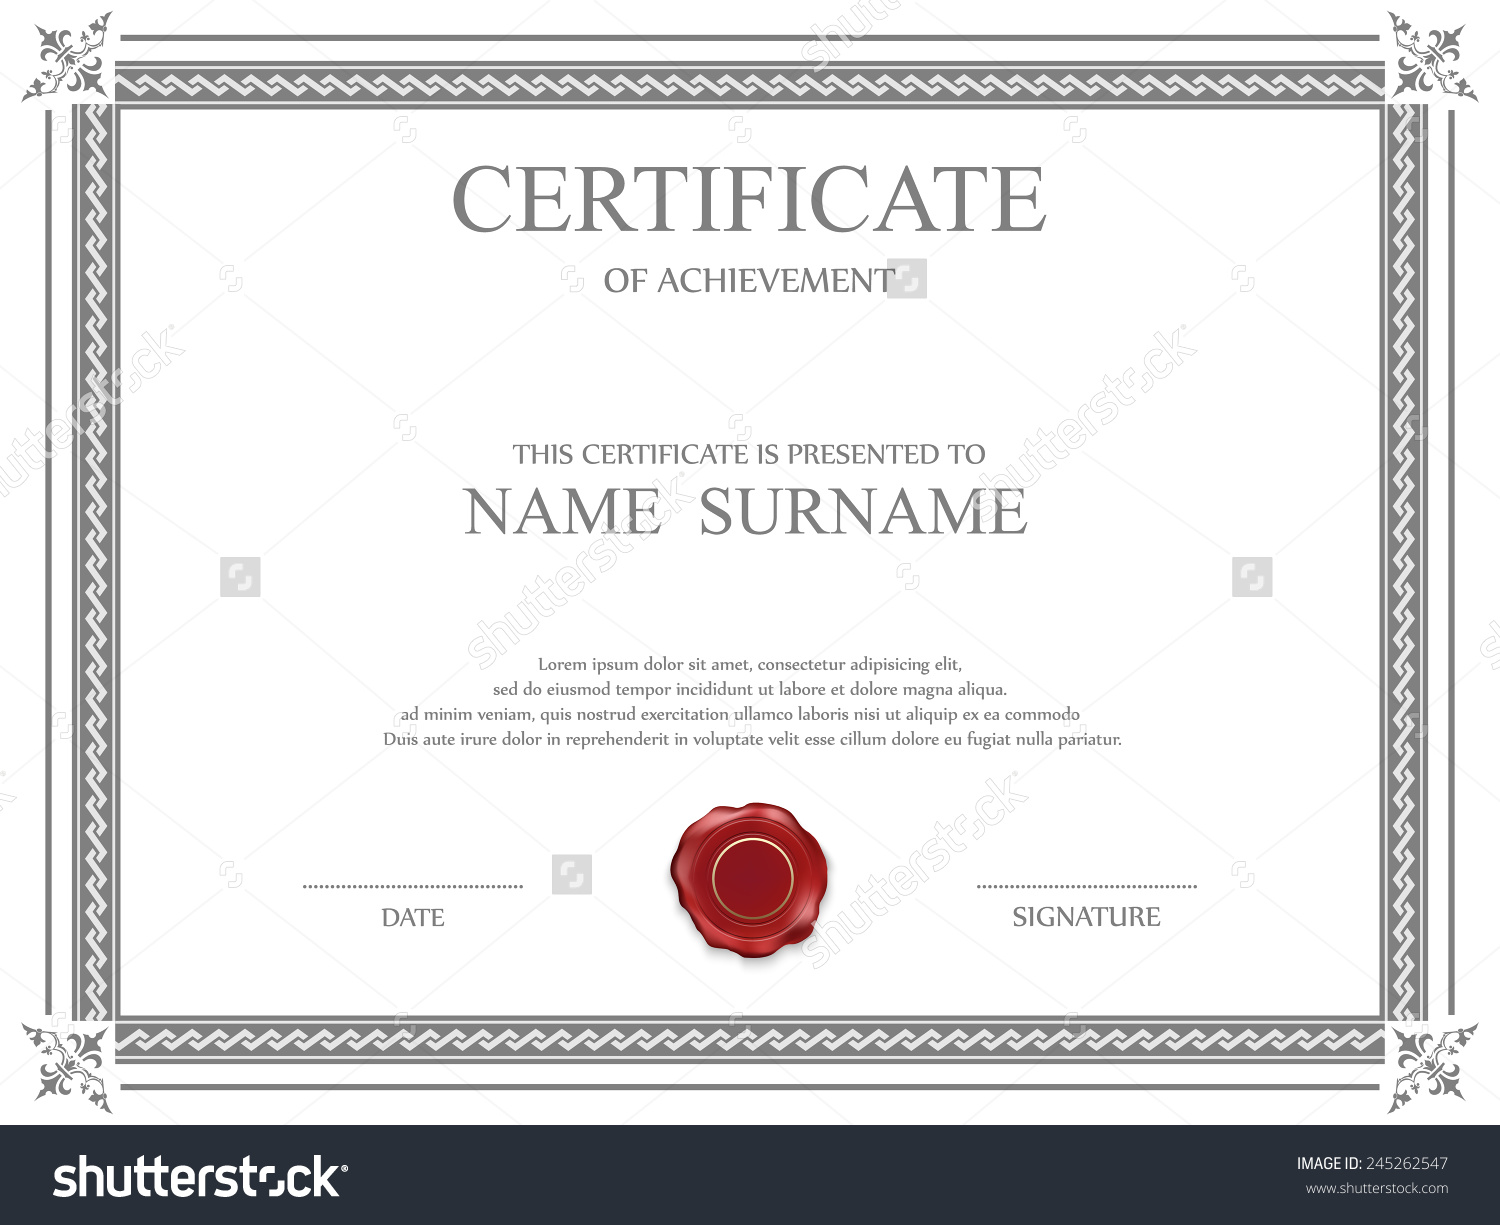 share certificate template south africa planner template